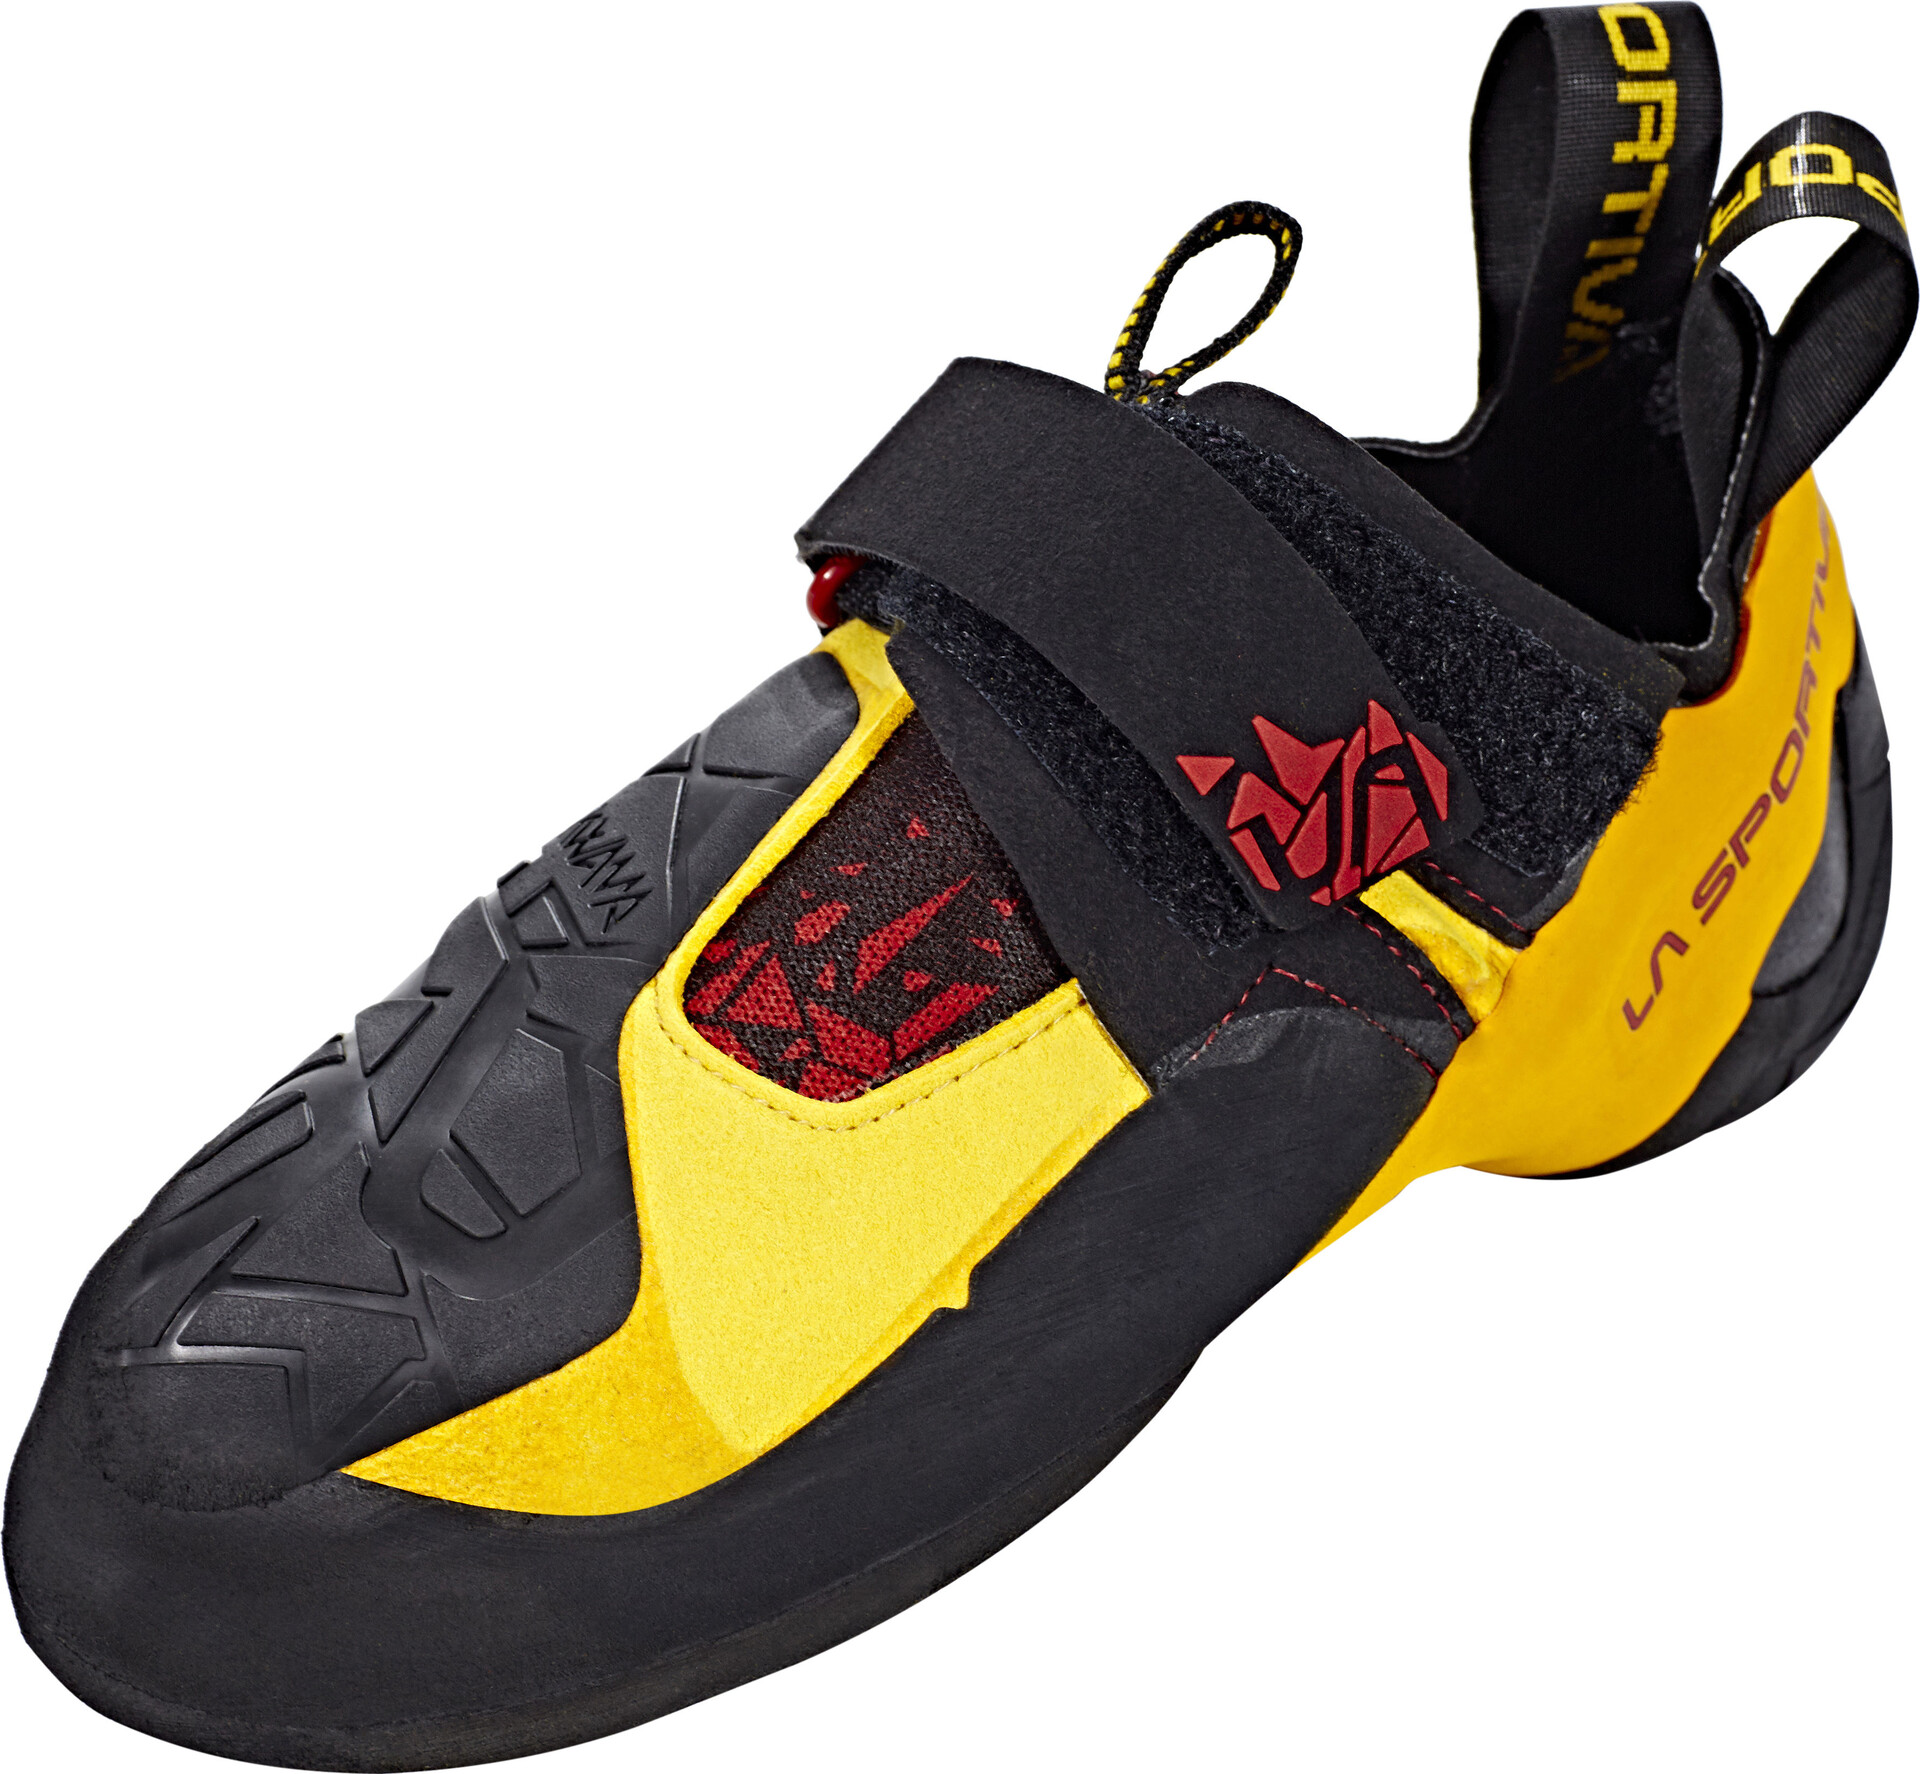 Shoes Sportiva Skwama La Climbing Blackyellow nkP0Ow8